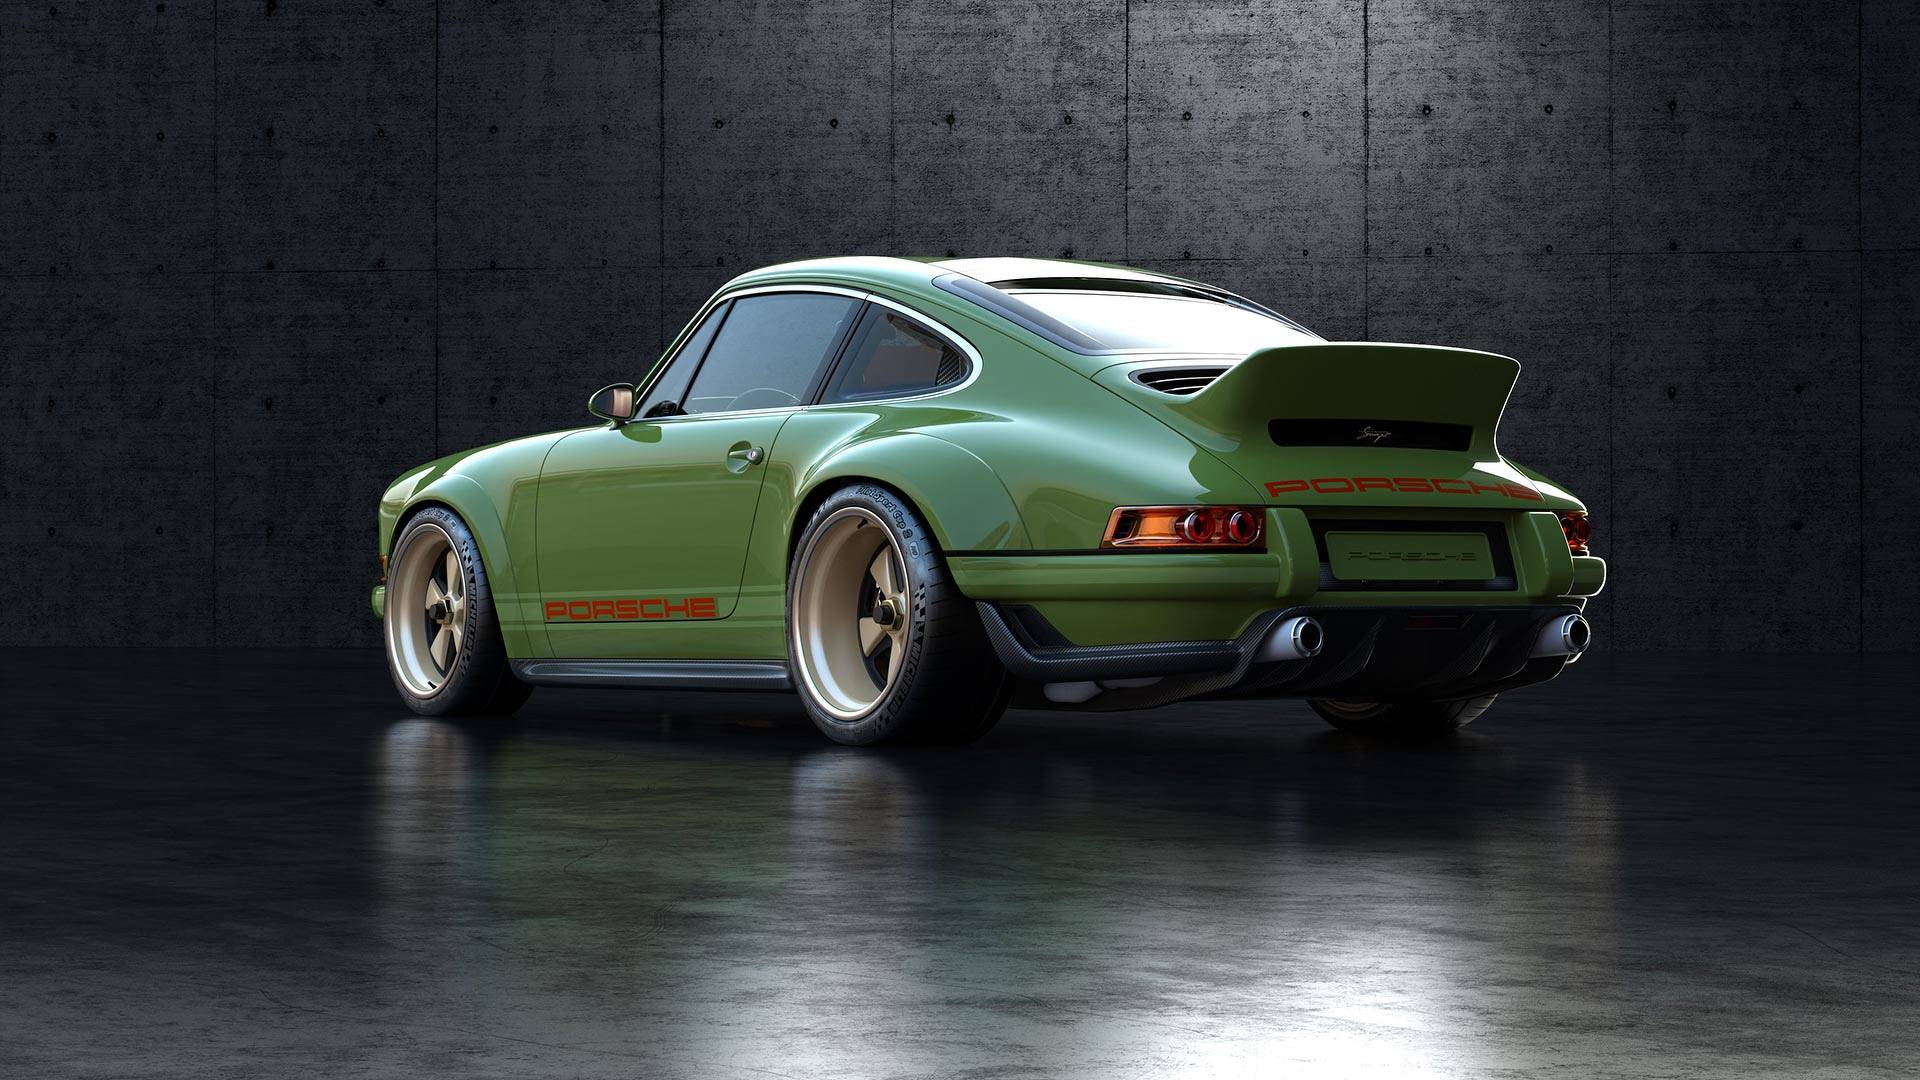 Singers New 500 HP Absinthe Porsche 911 Is The Ultimate